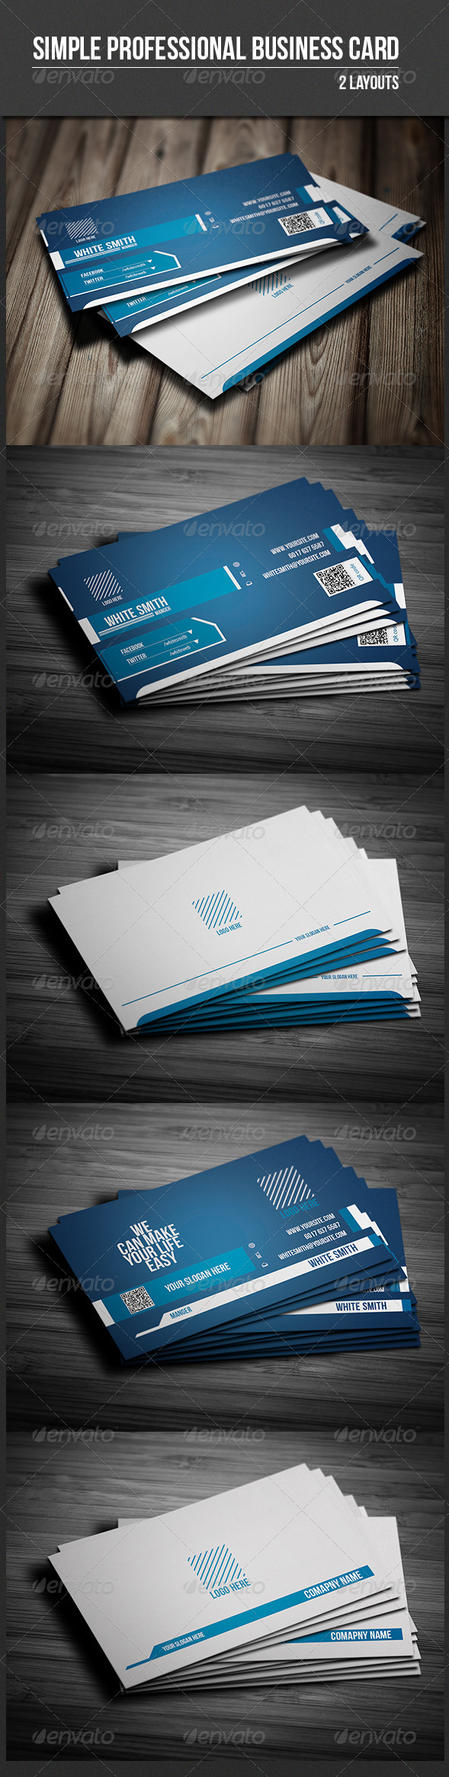 Simple Professional Business Card by UnicoDesign